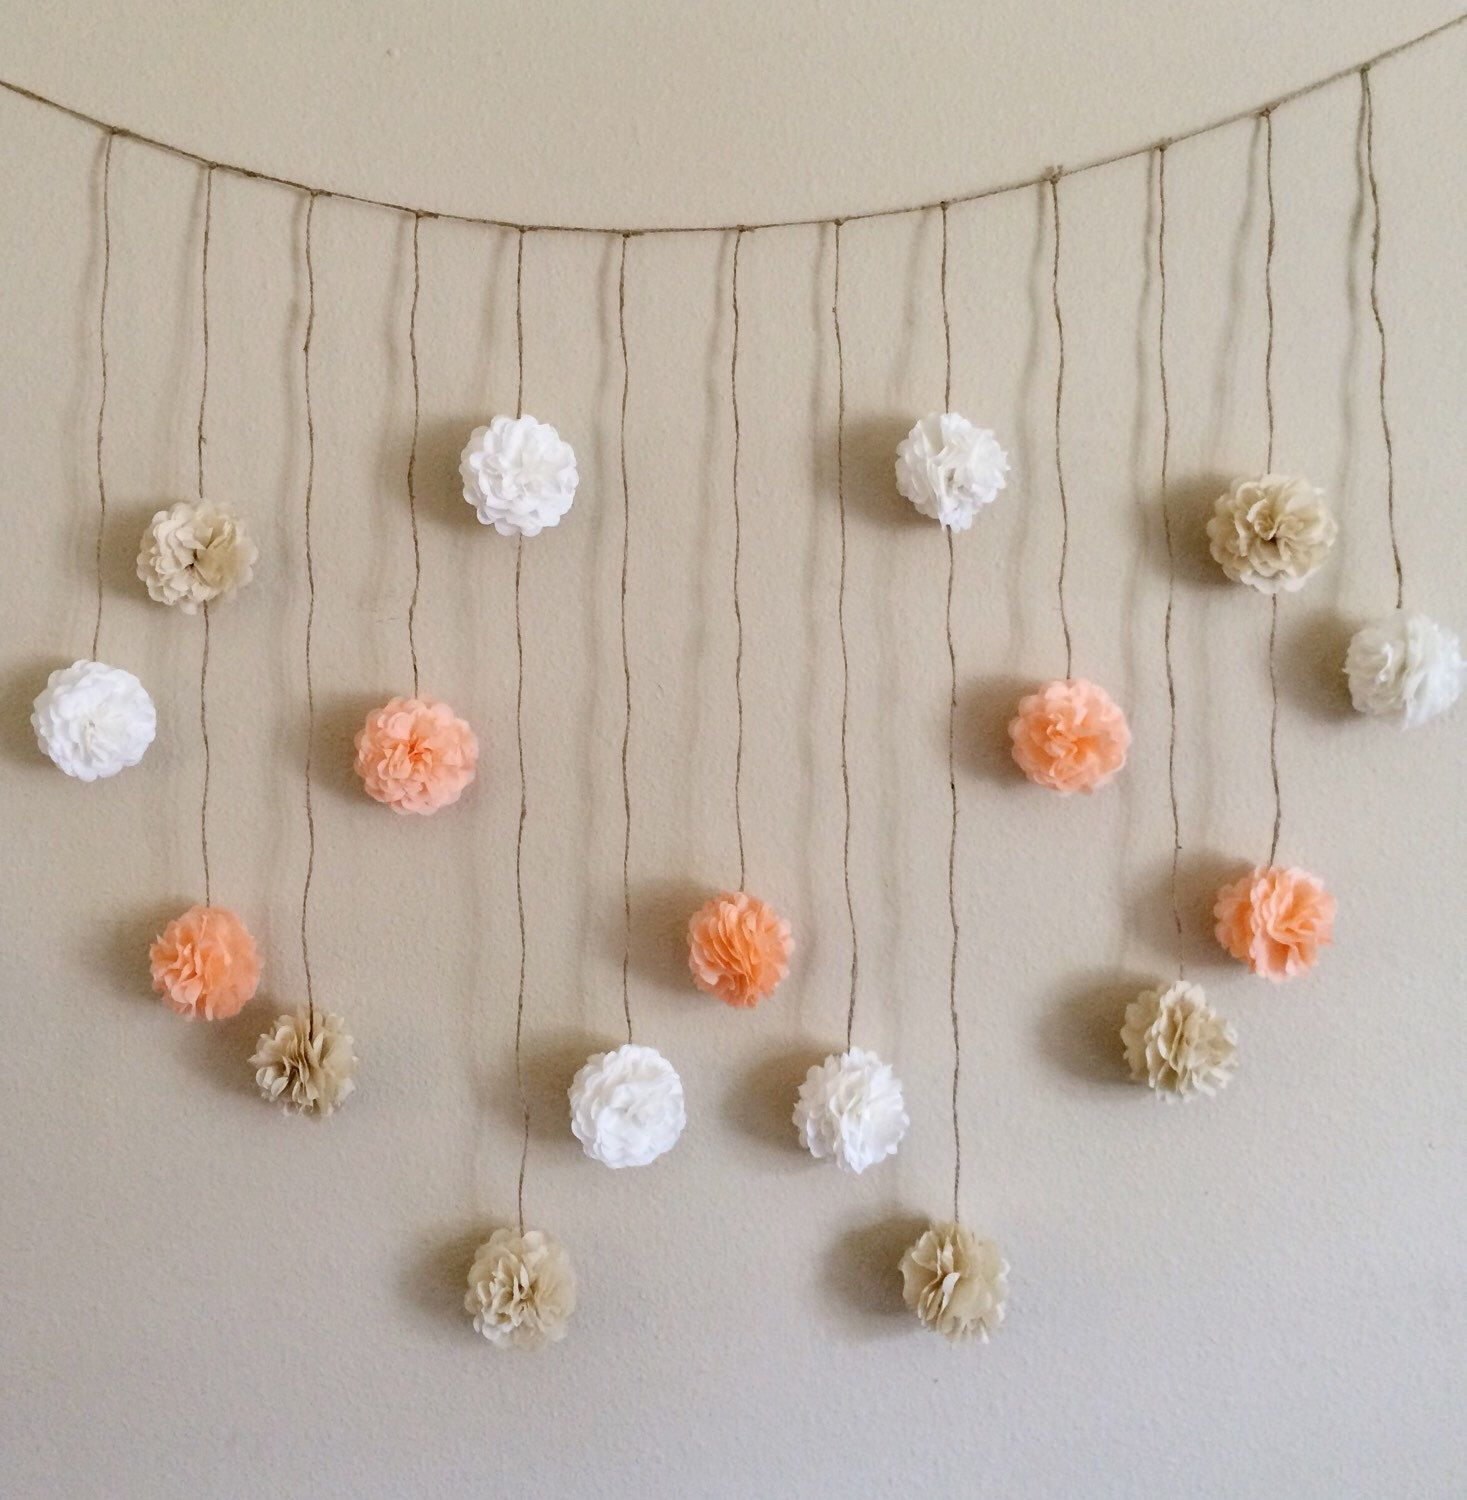 Pom pom garland peach and creams tissue paper flowers wedding pom pom garland peach and creams tissue paper flowers wedding garland diy kit party decoration kit baby bunting banner bridal shower solutioingenieria Images